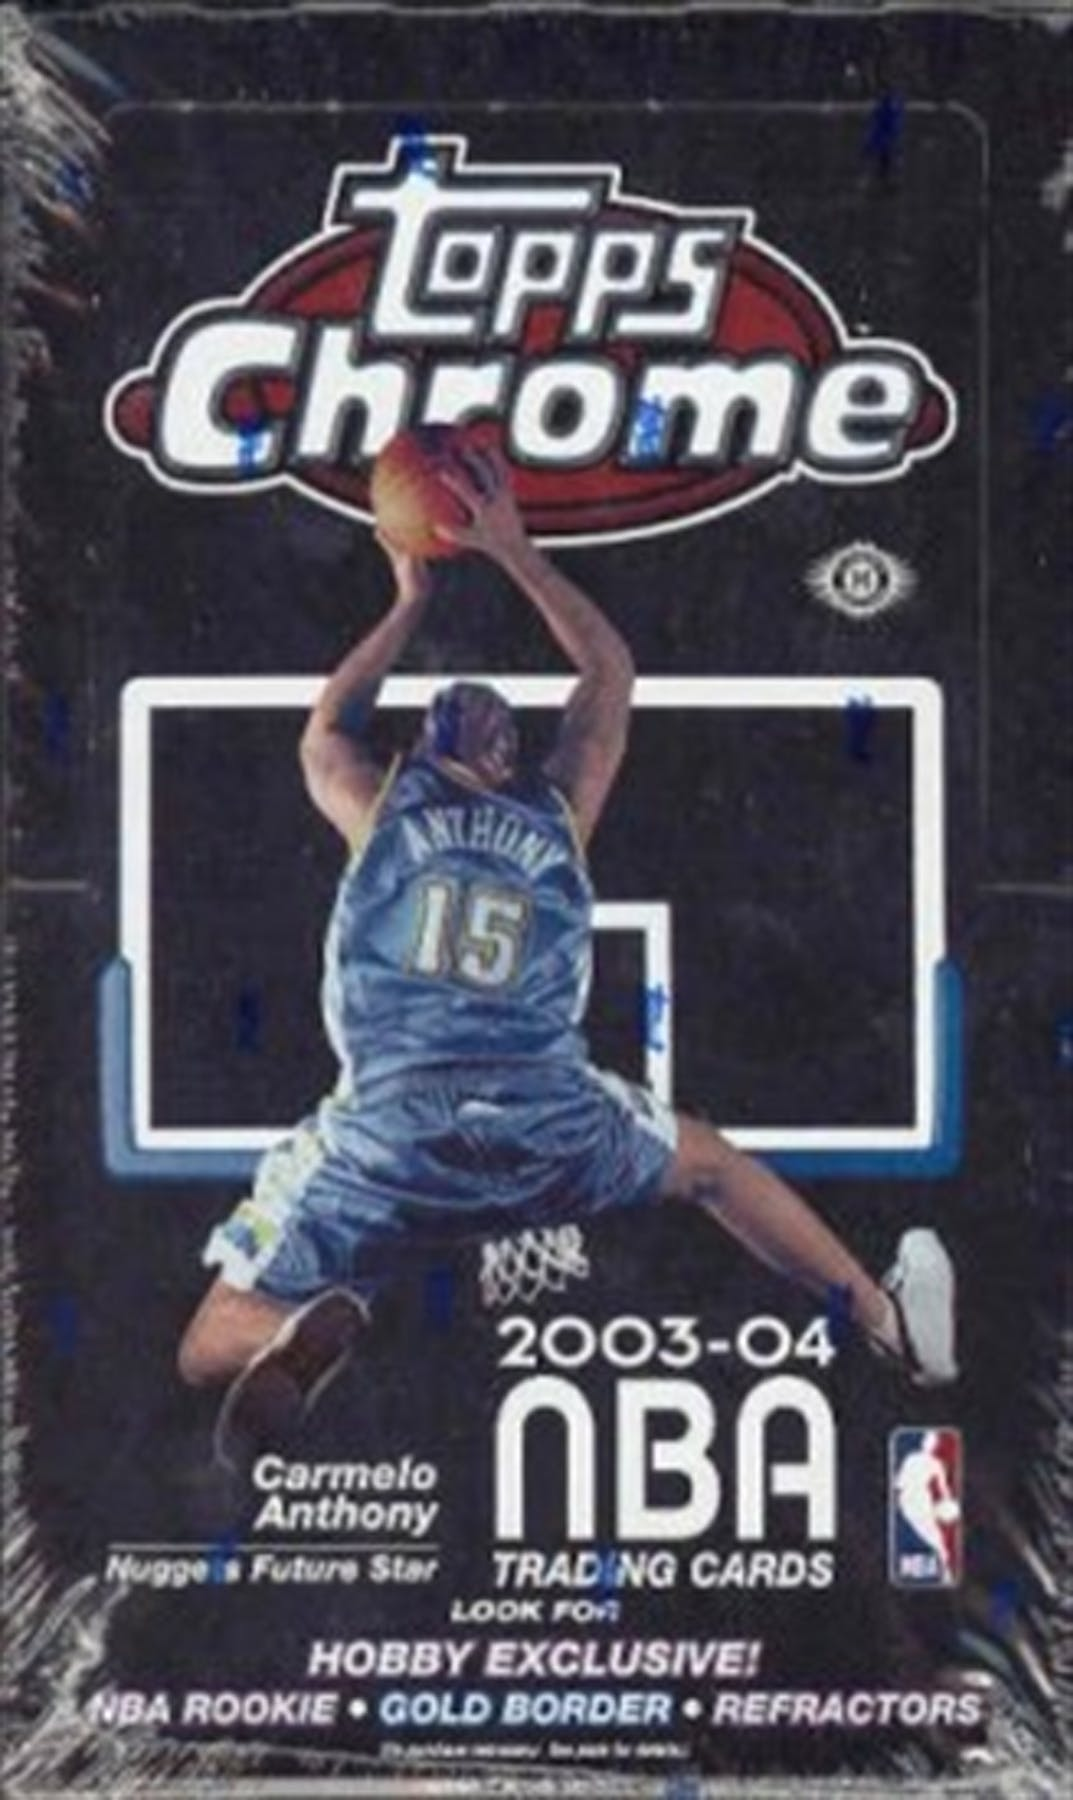 90+ 2003 Topps Chrome Basketball - Image Unavailable Not Available ... 475a4c642